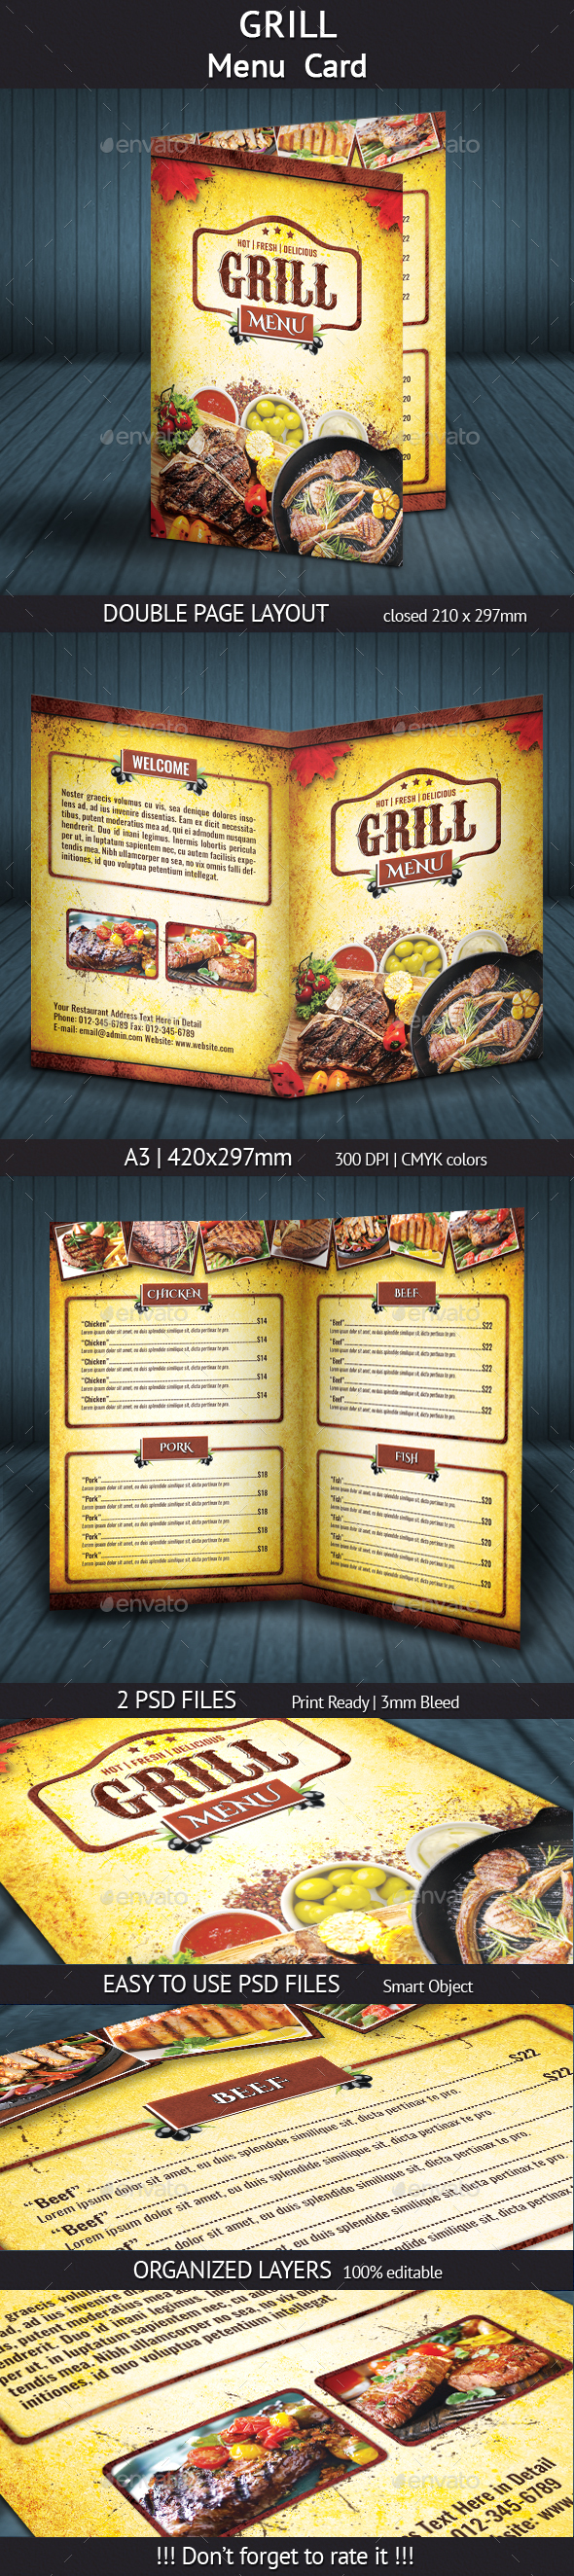 Grill Menu (A4) - Food Menus Print Templates